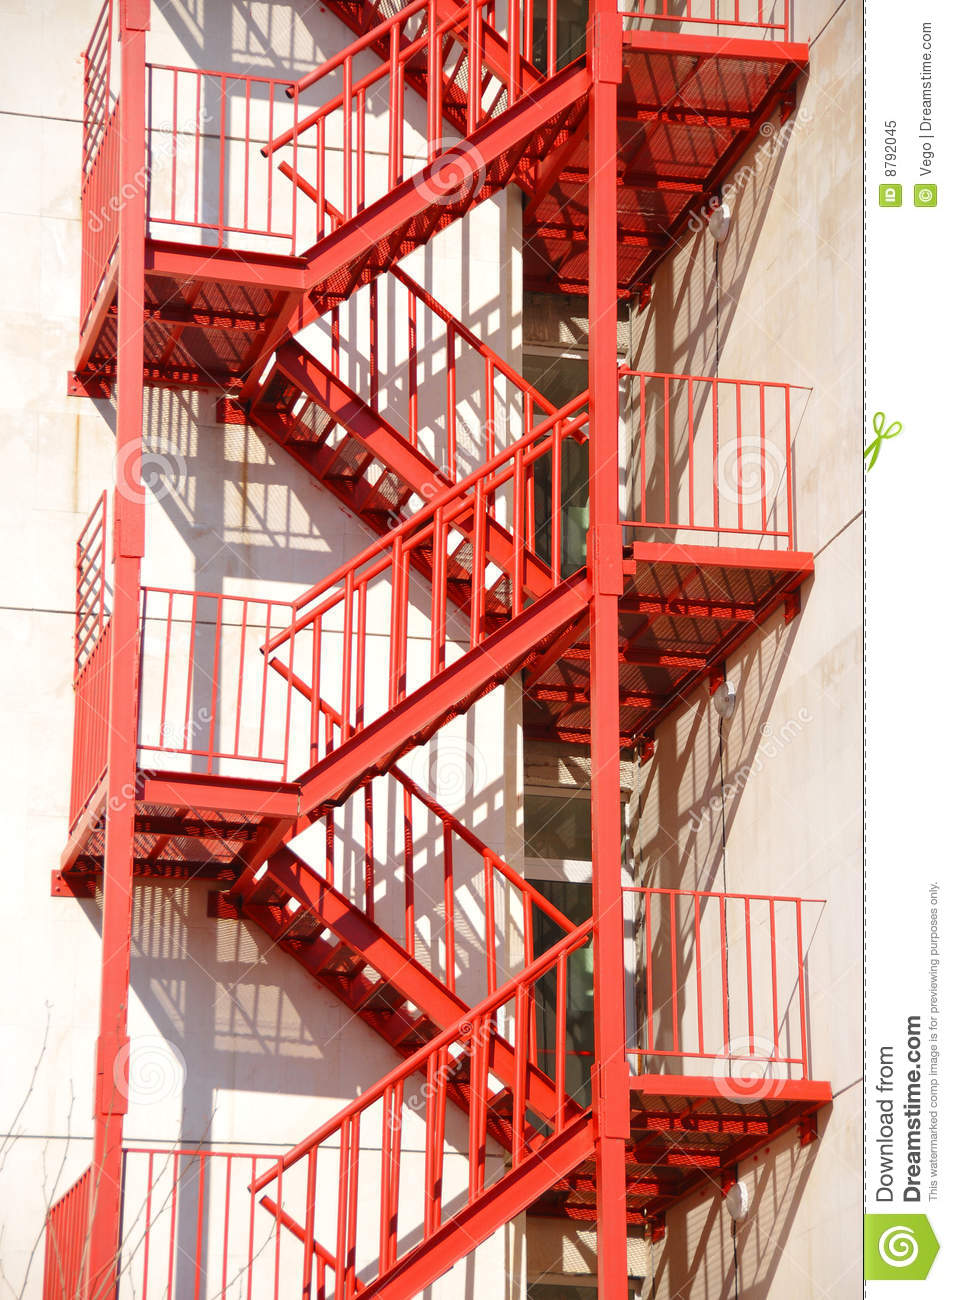 Stairway access provisions